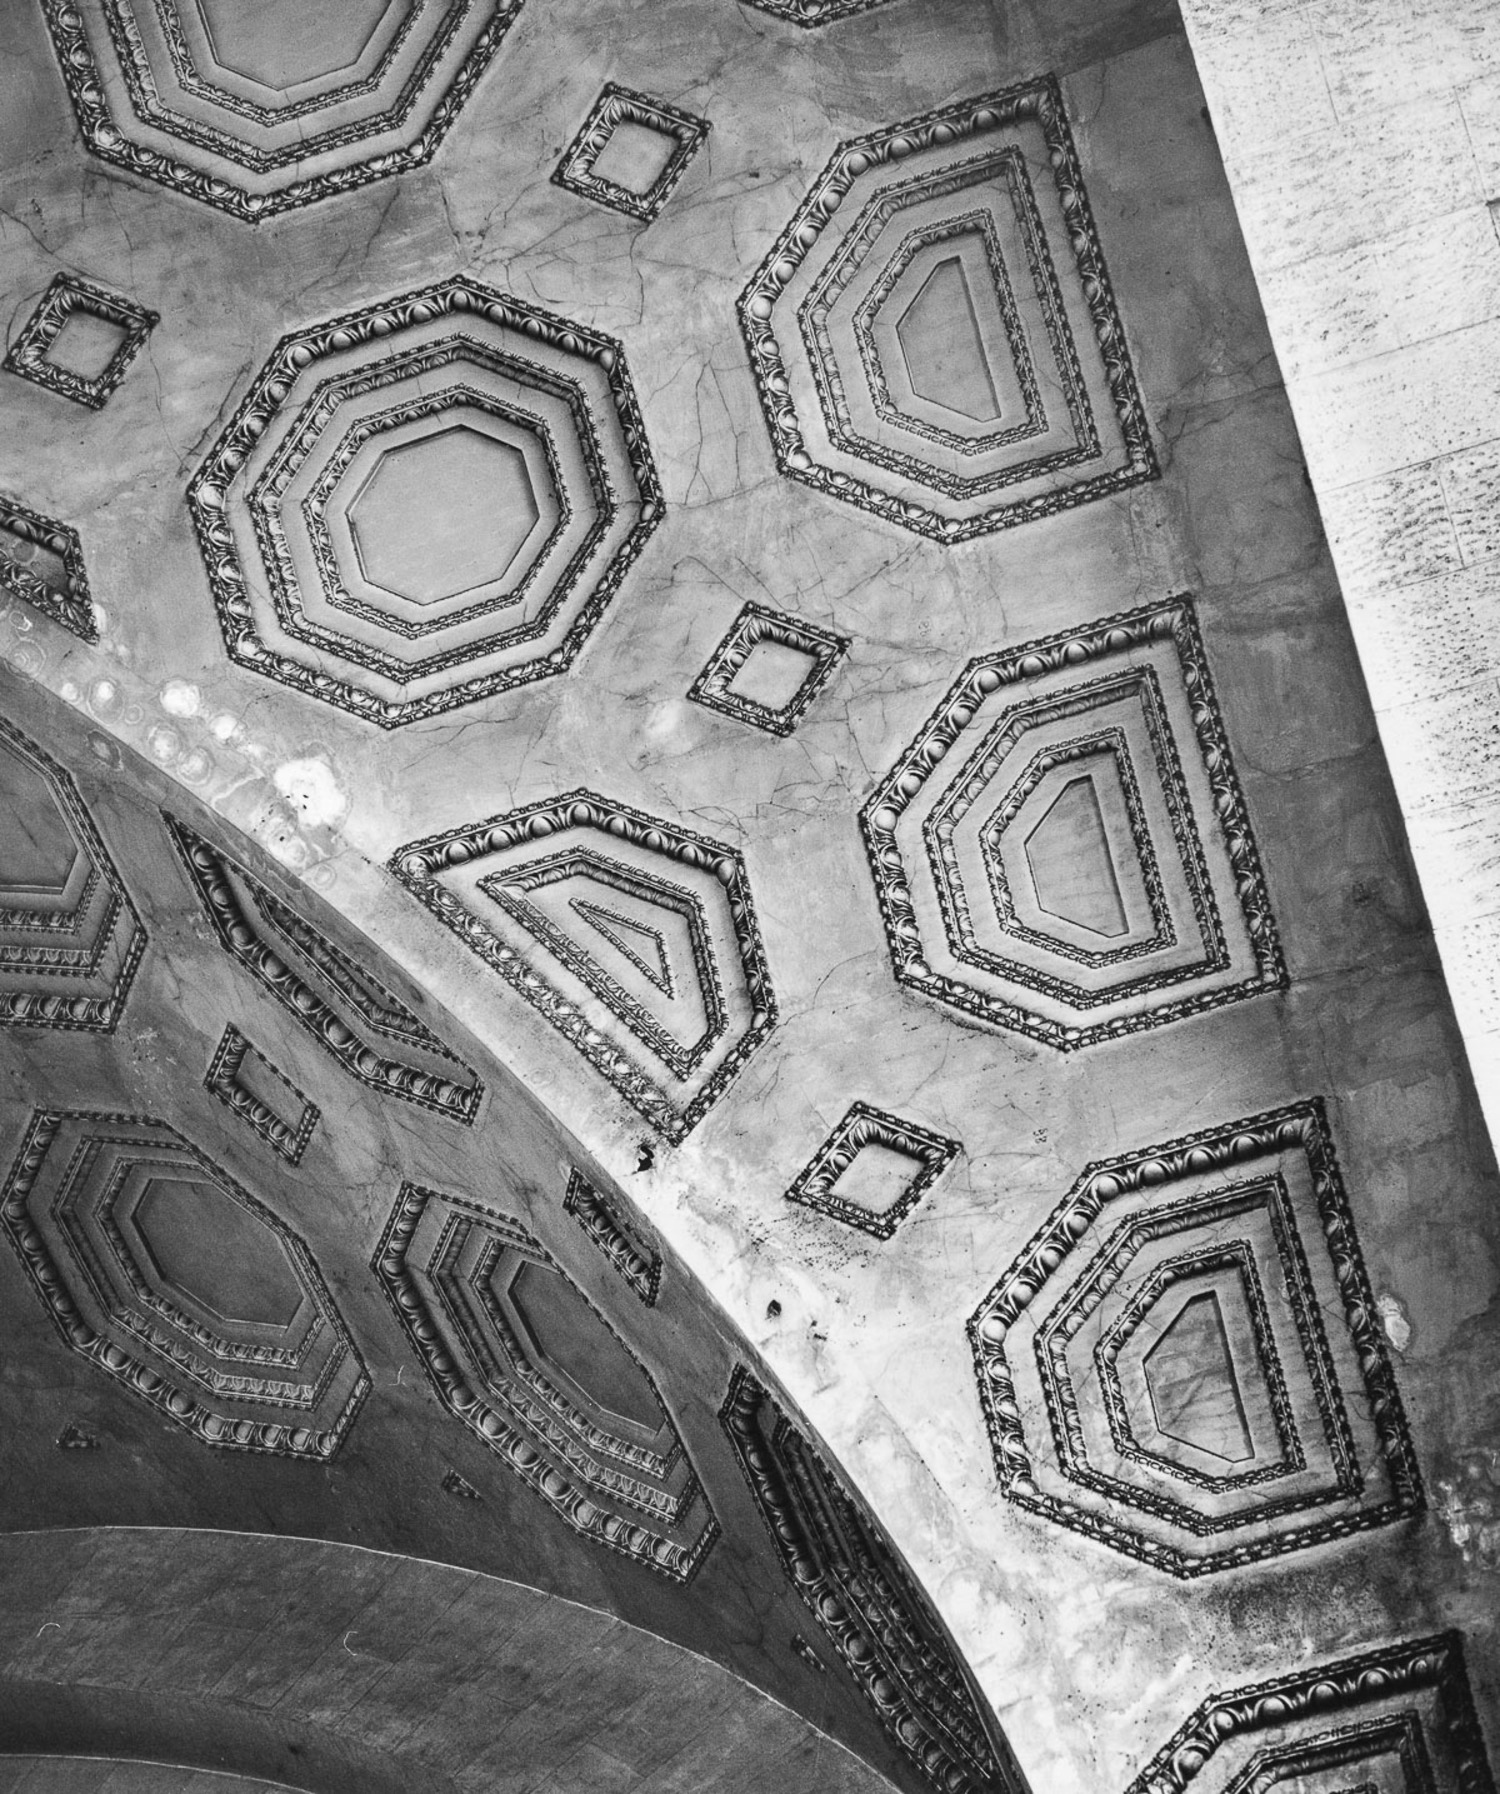 Sept. 6, 1962. The ceiling of the main waiting room, one year before the station's demolition.